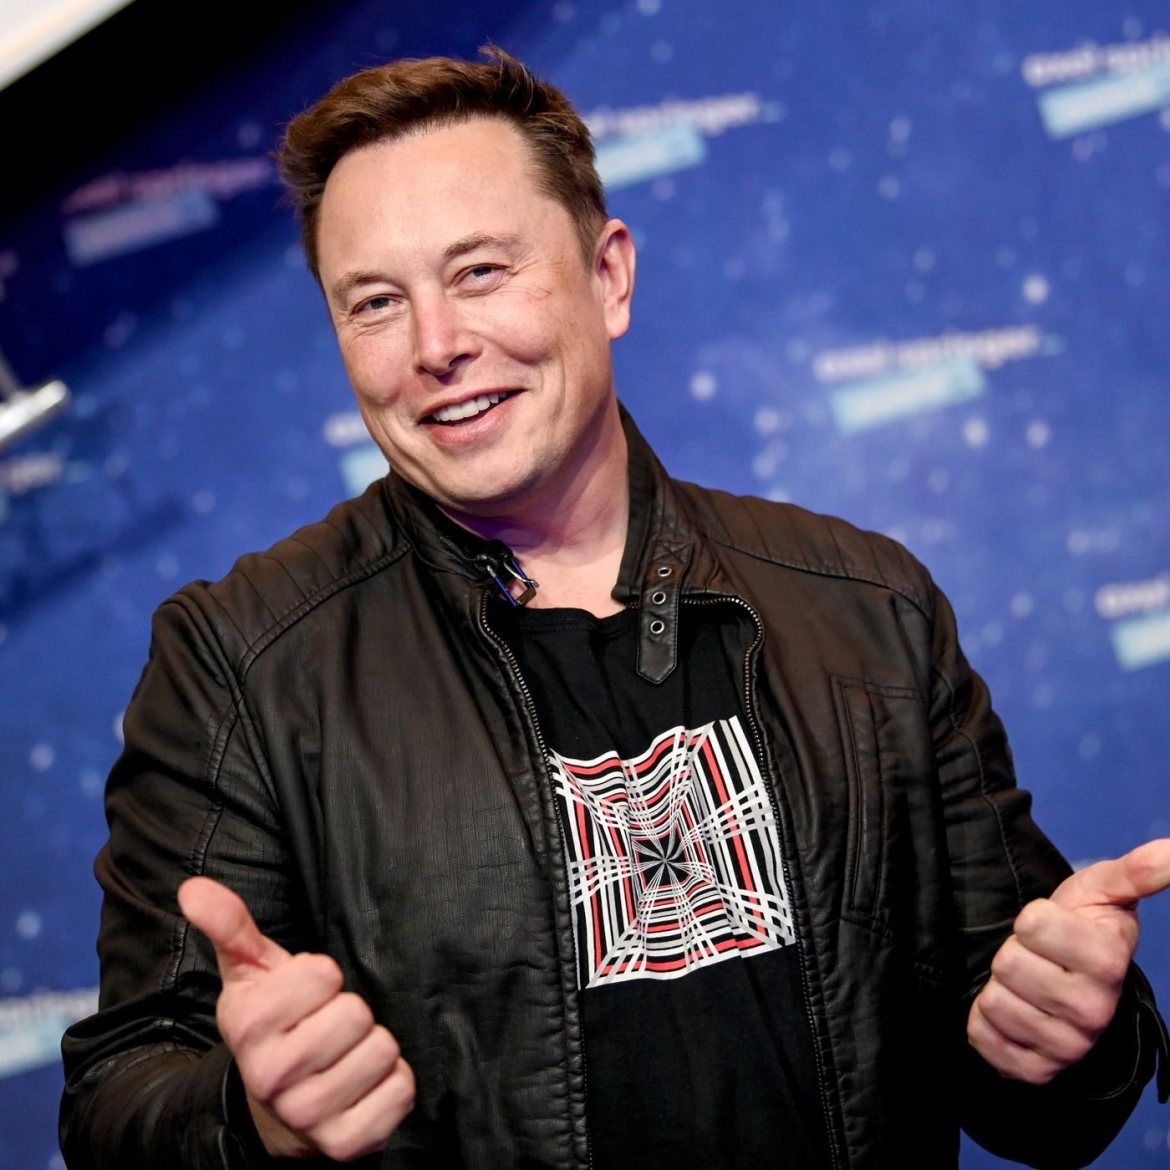 Elon Musk Reacts Strangely to being the Richest Man, Plans to Build a City on Mars